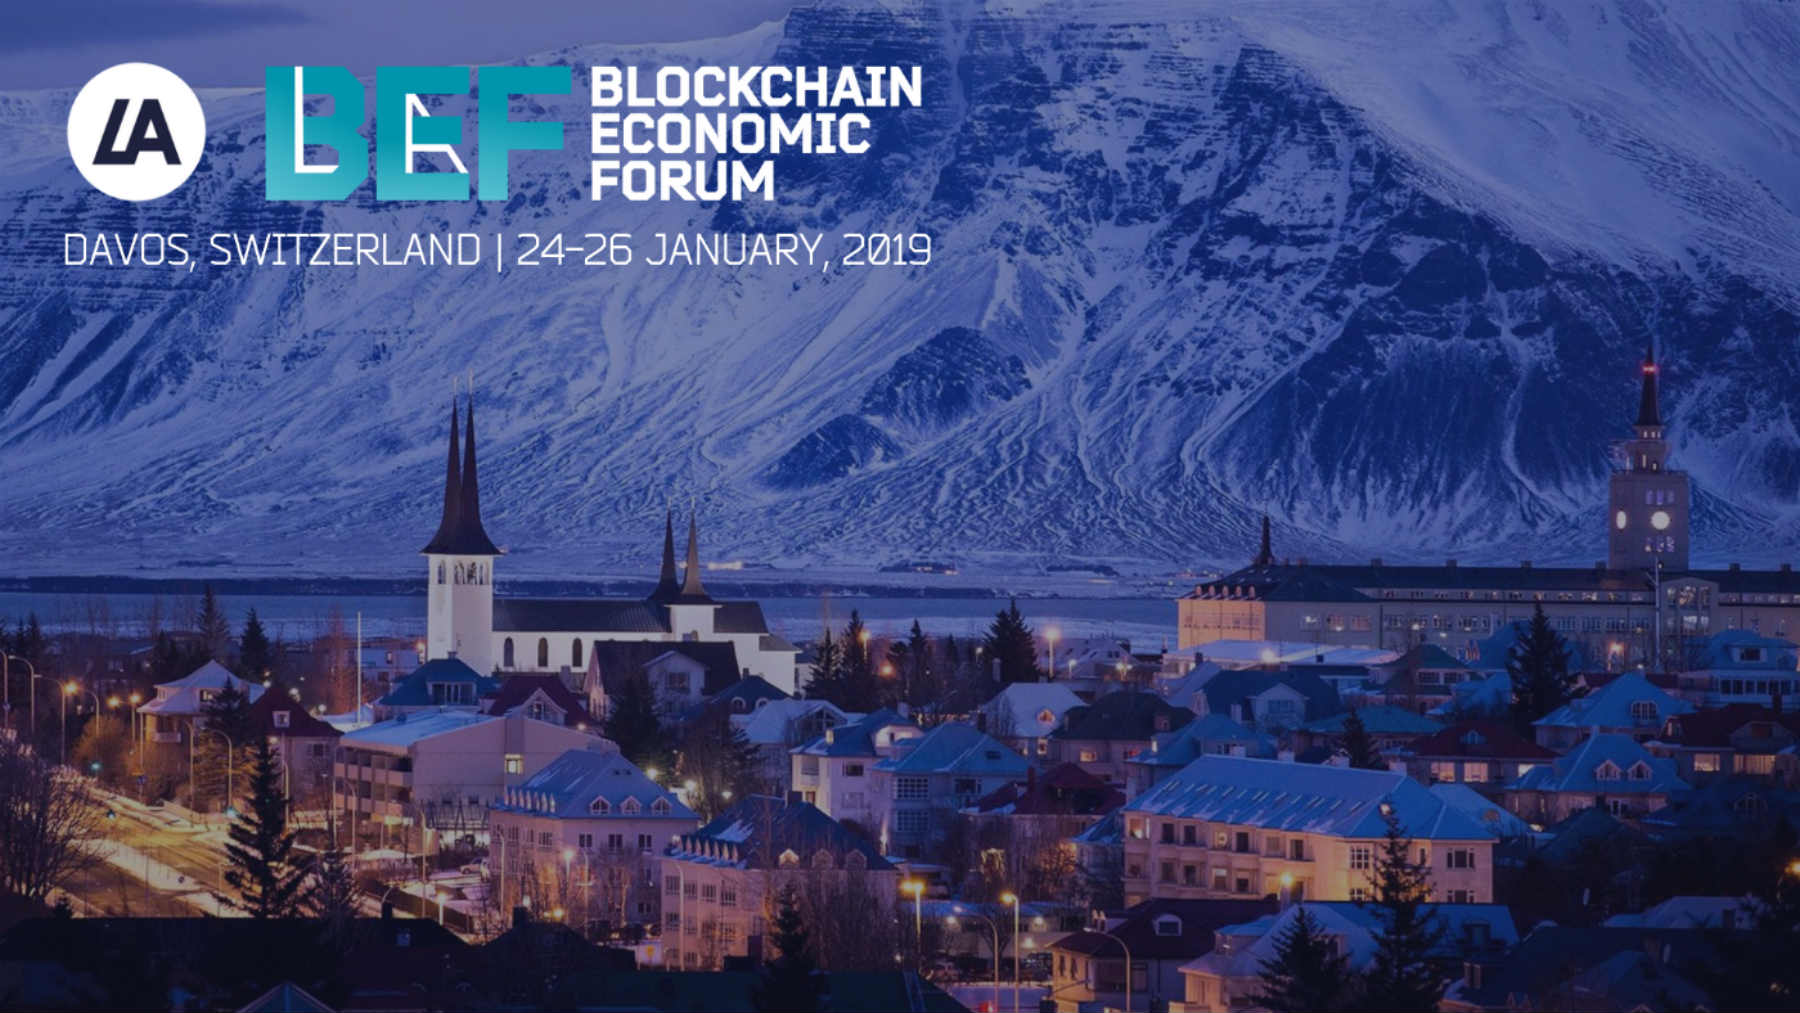 E&S Group at the LATOKEN Blockchain Business Forum in Davos